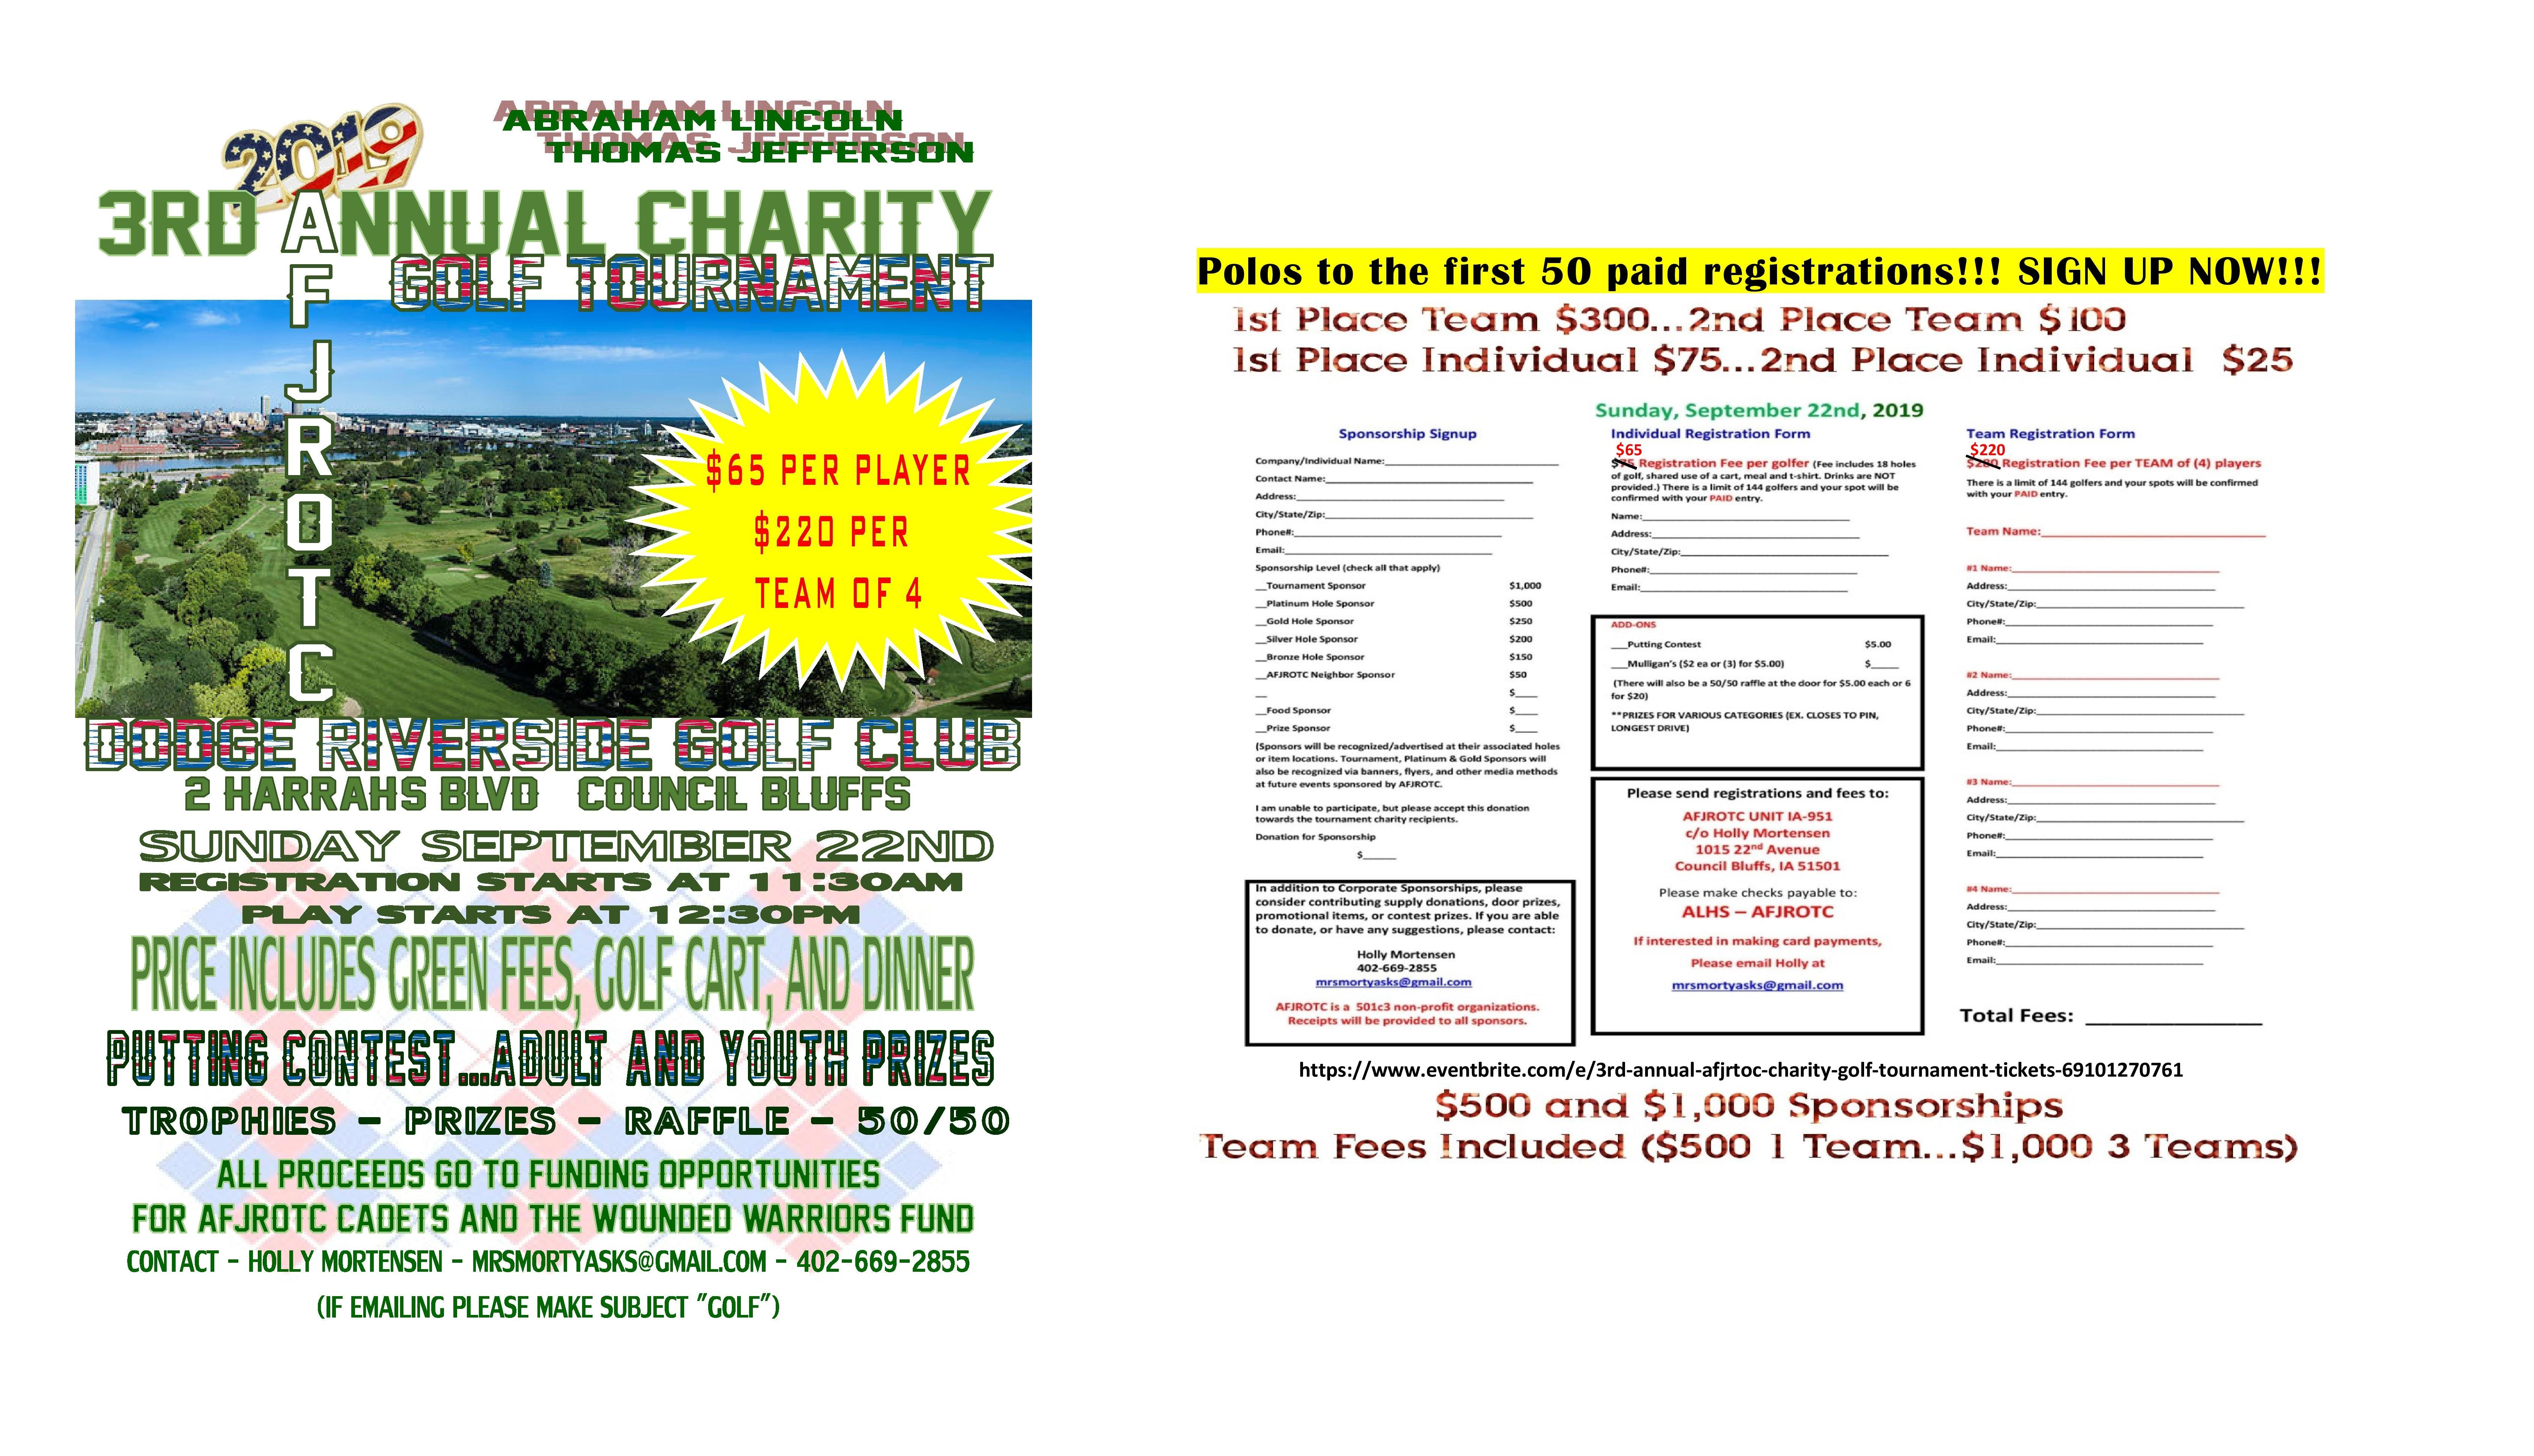 3rd Annual AFJRTOC Charity Golf Tournament